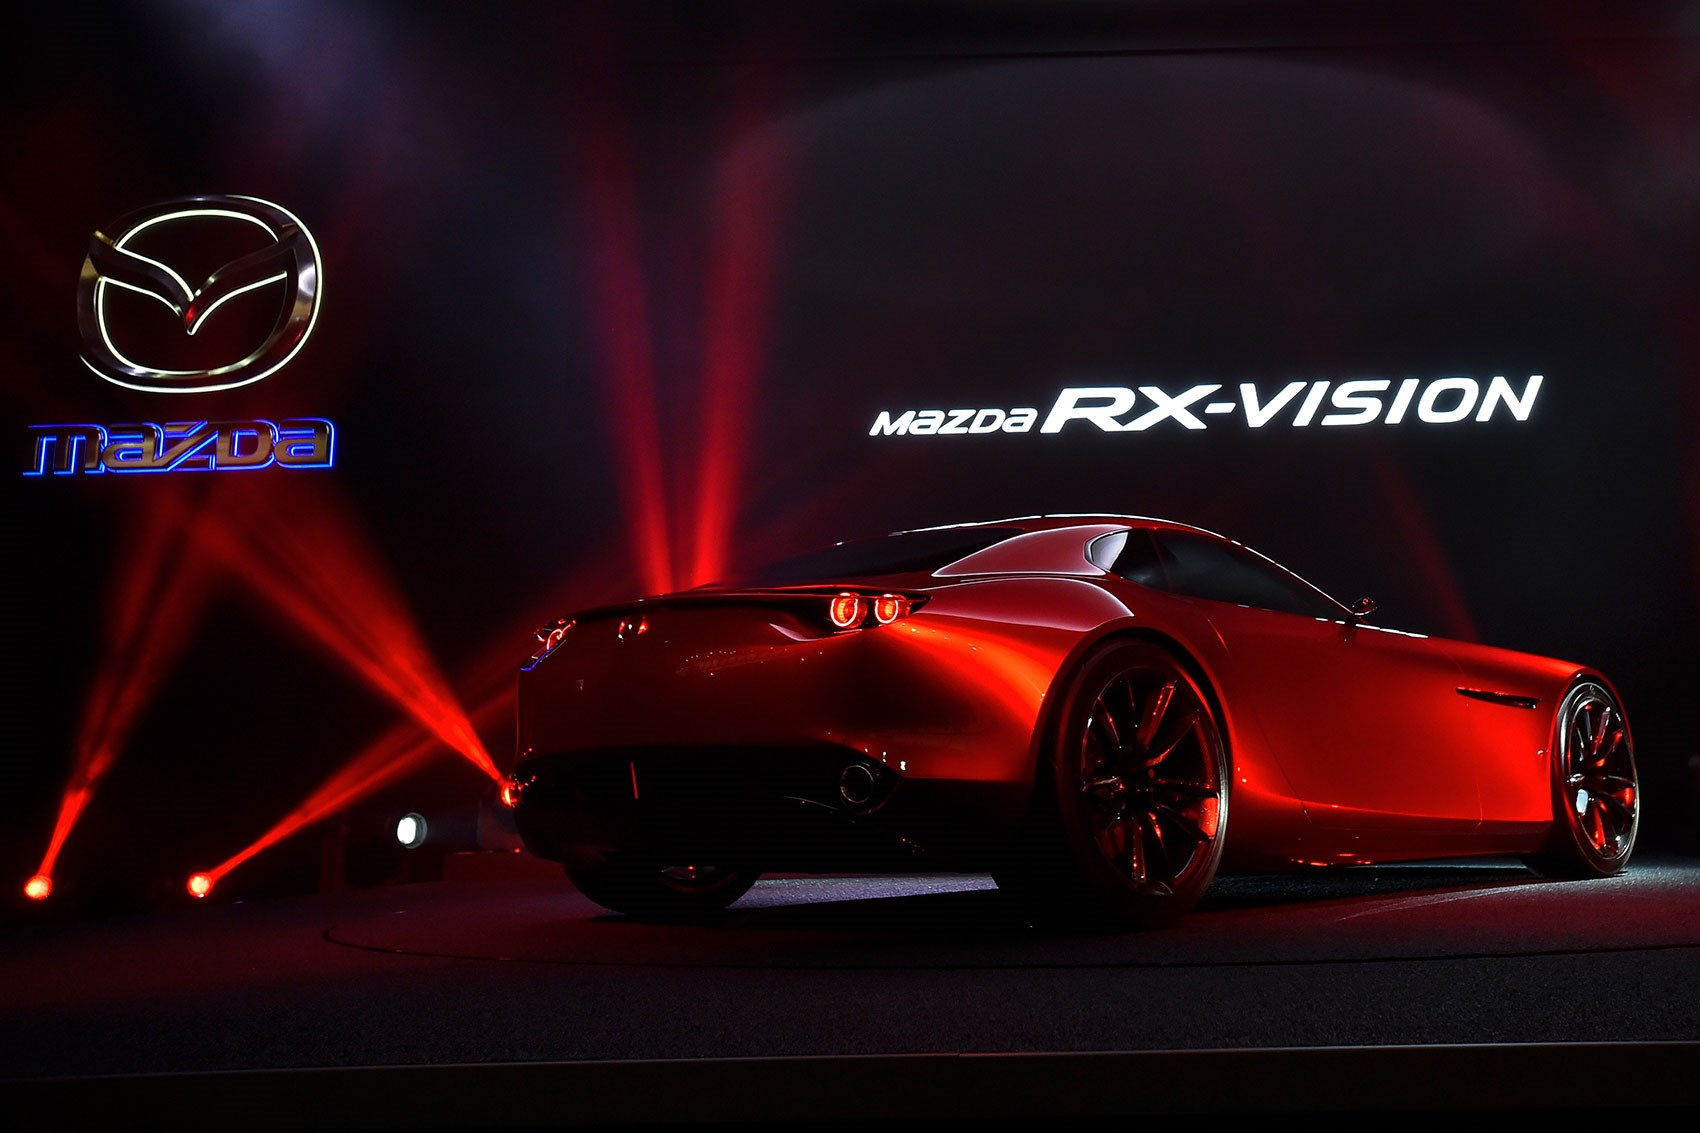 Concept car magazine cool car wallpapers - A Tokyo Stunner The Mazda Rx Vision Concept The Mazda Rx Vision Concept Car